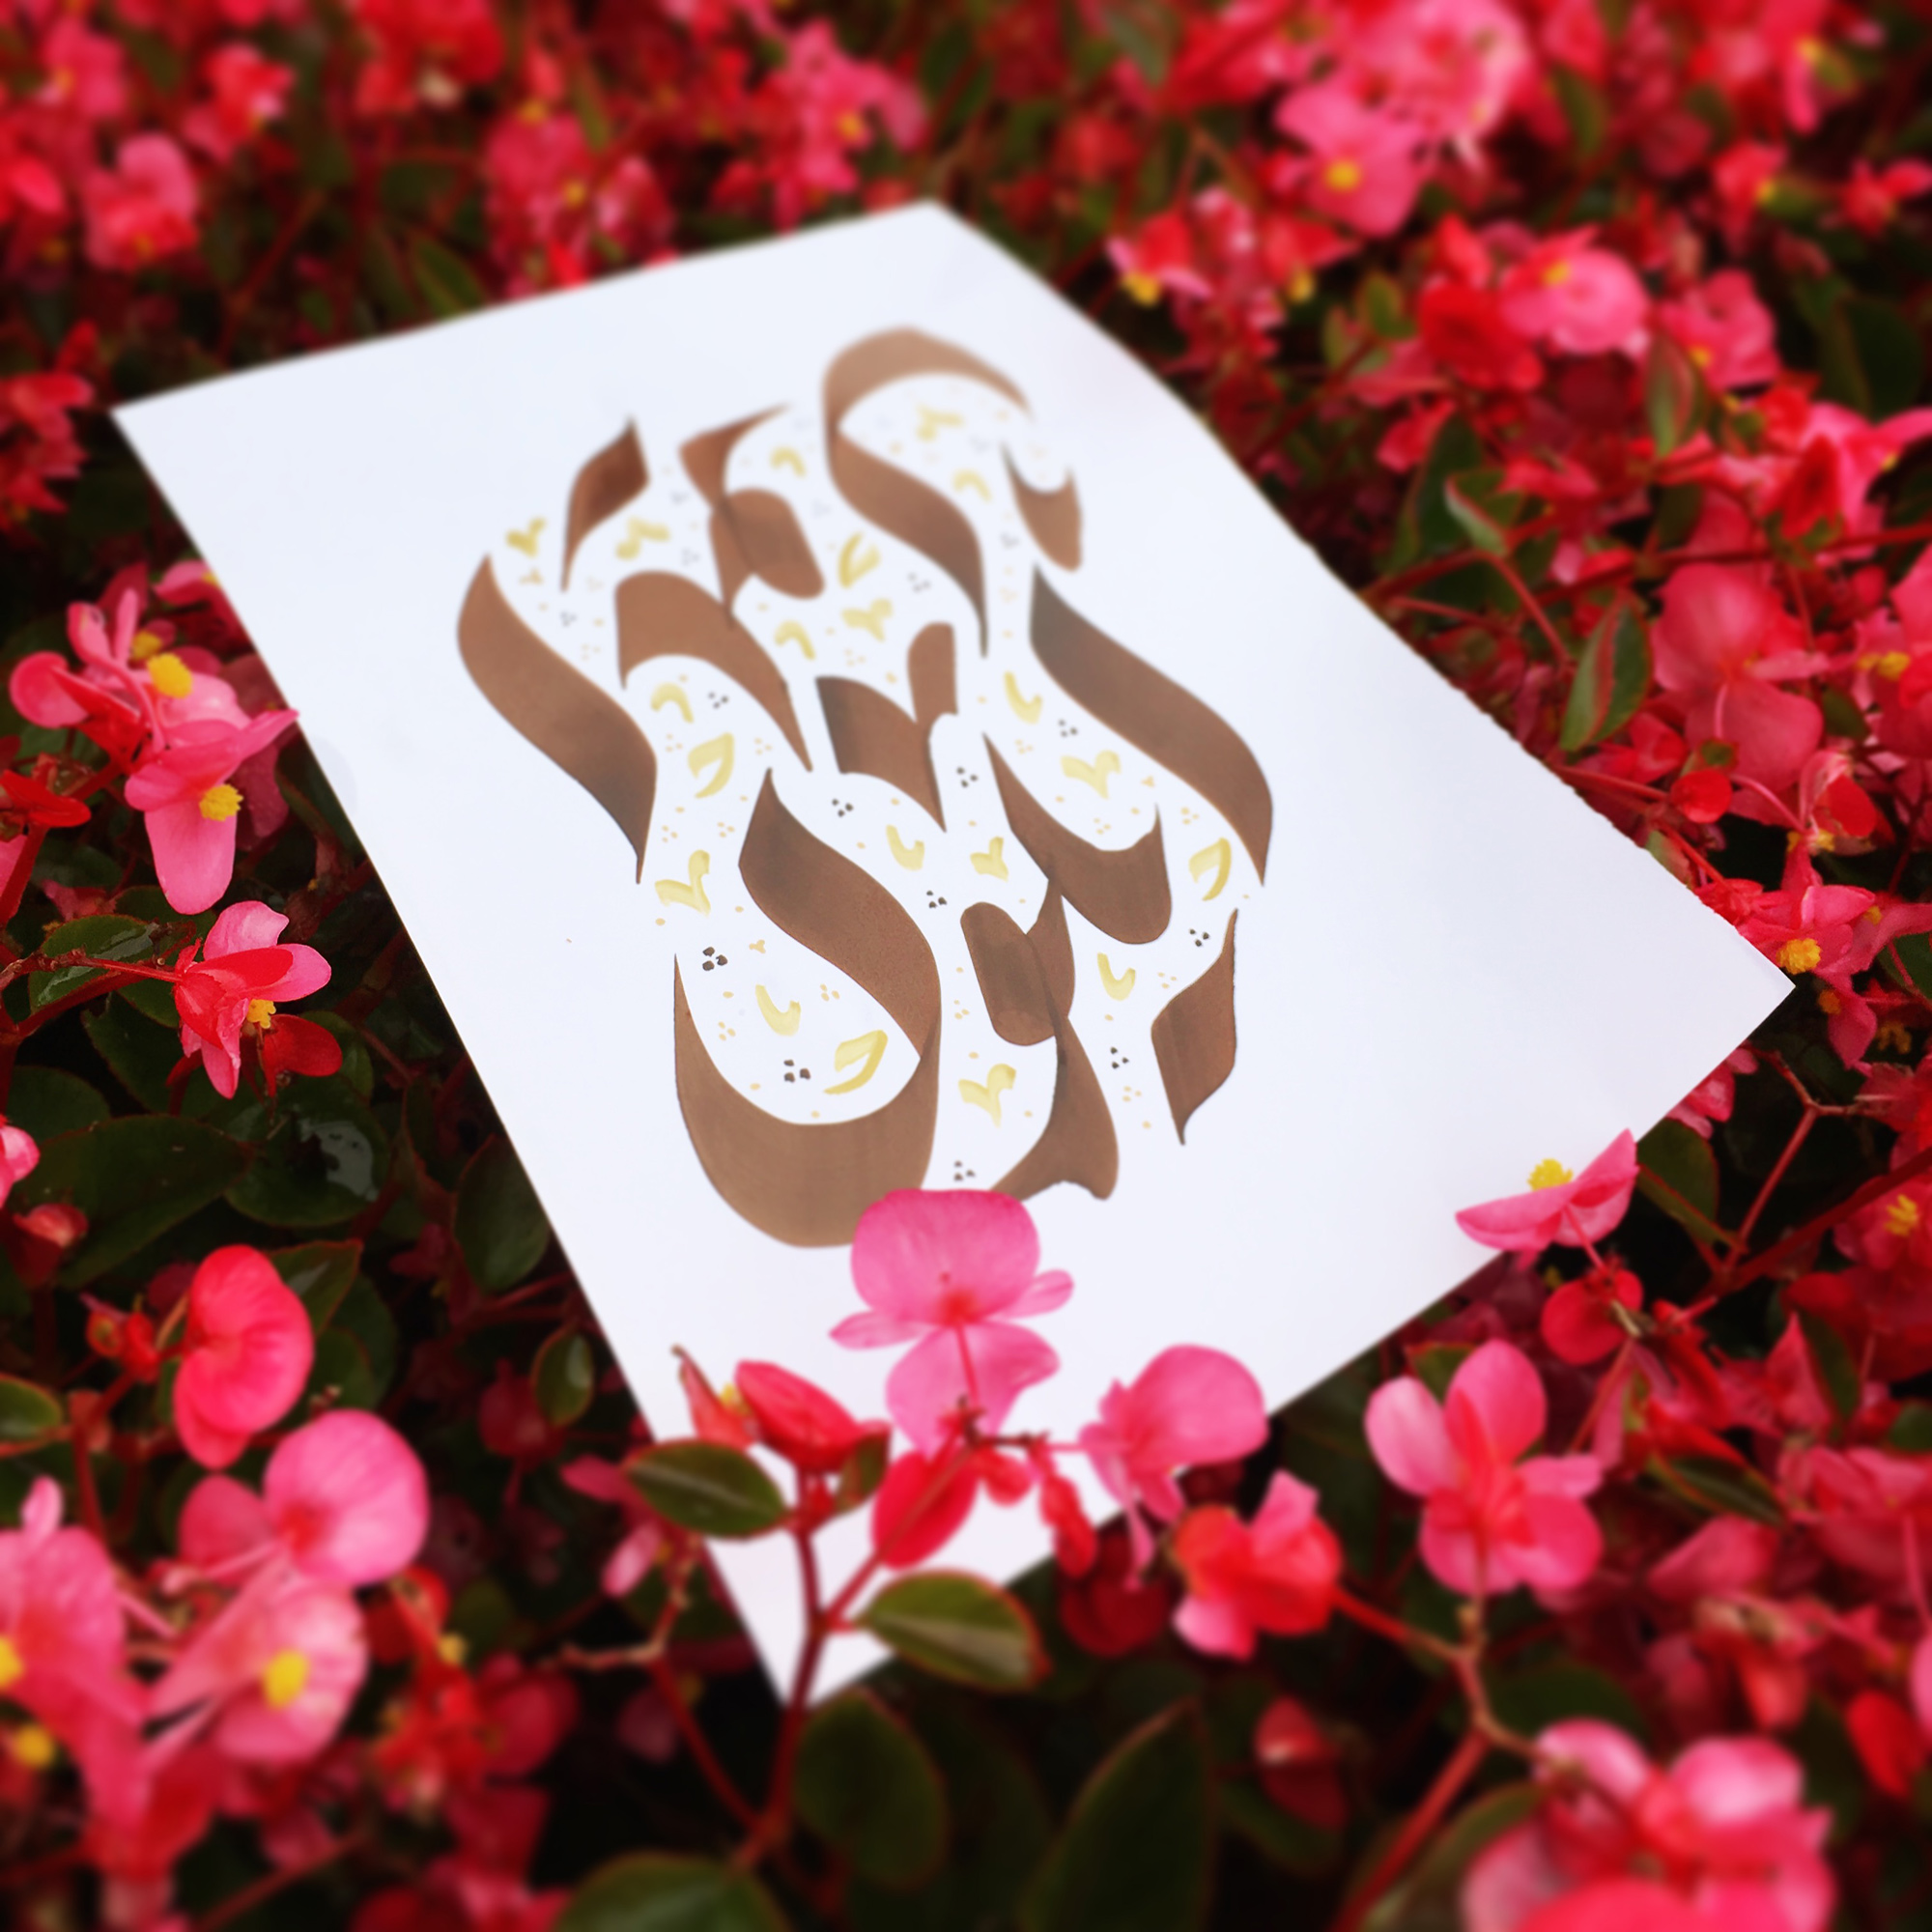 September Arabic Calligraphy